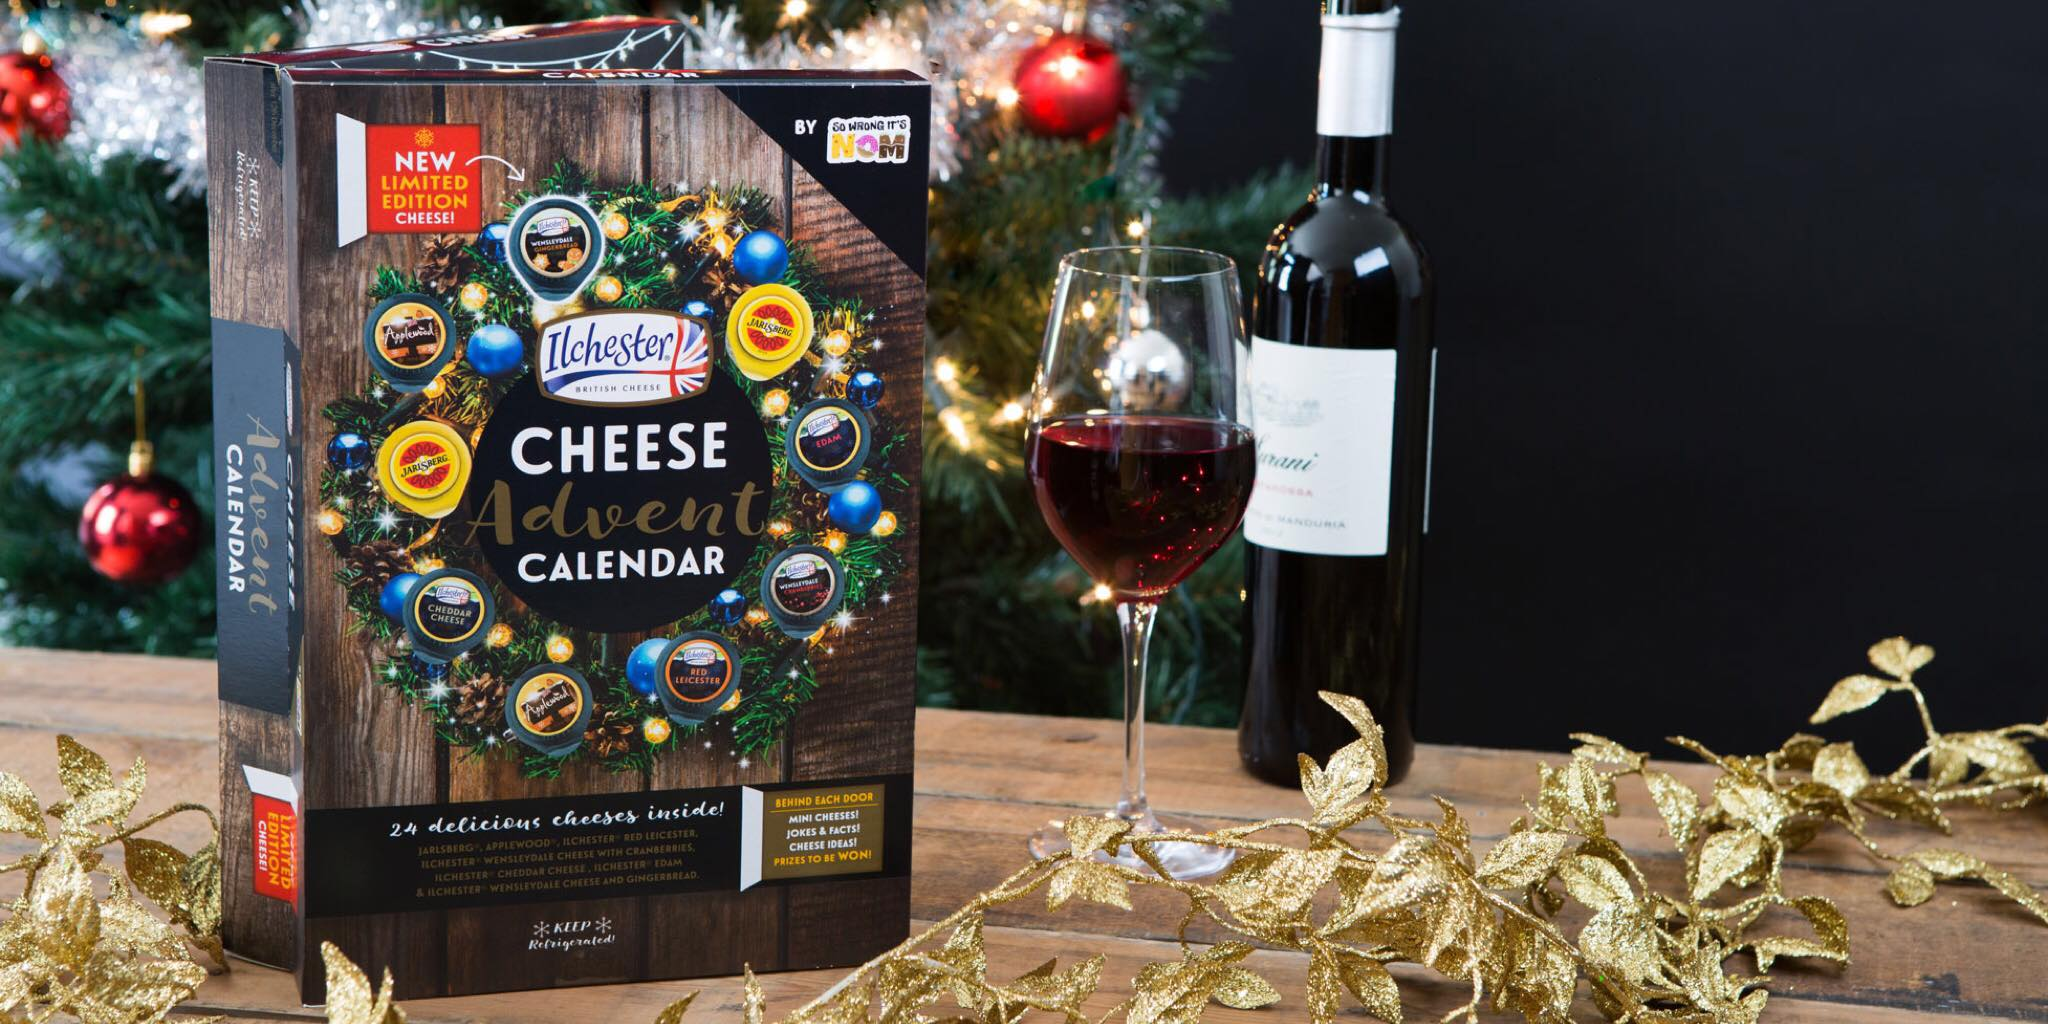 The Cheese Advent Calendar returns bigger and better!